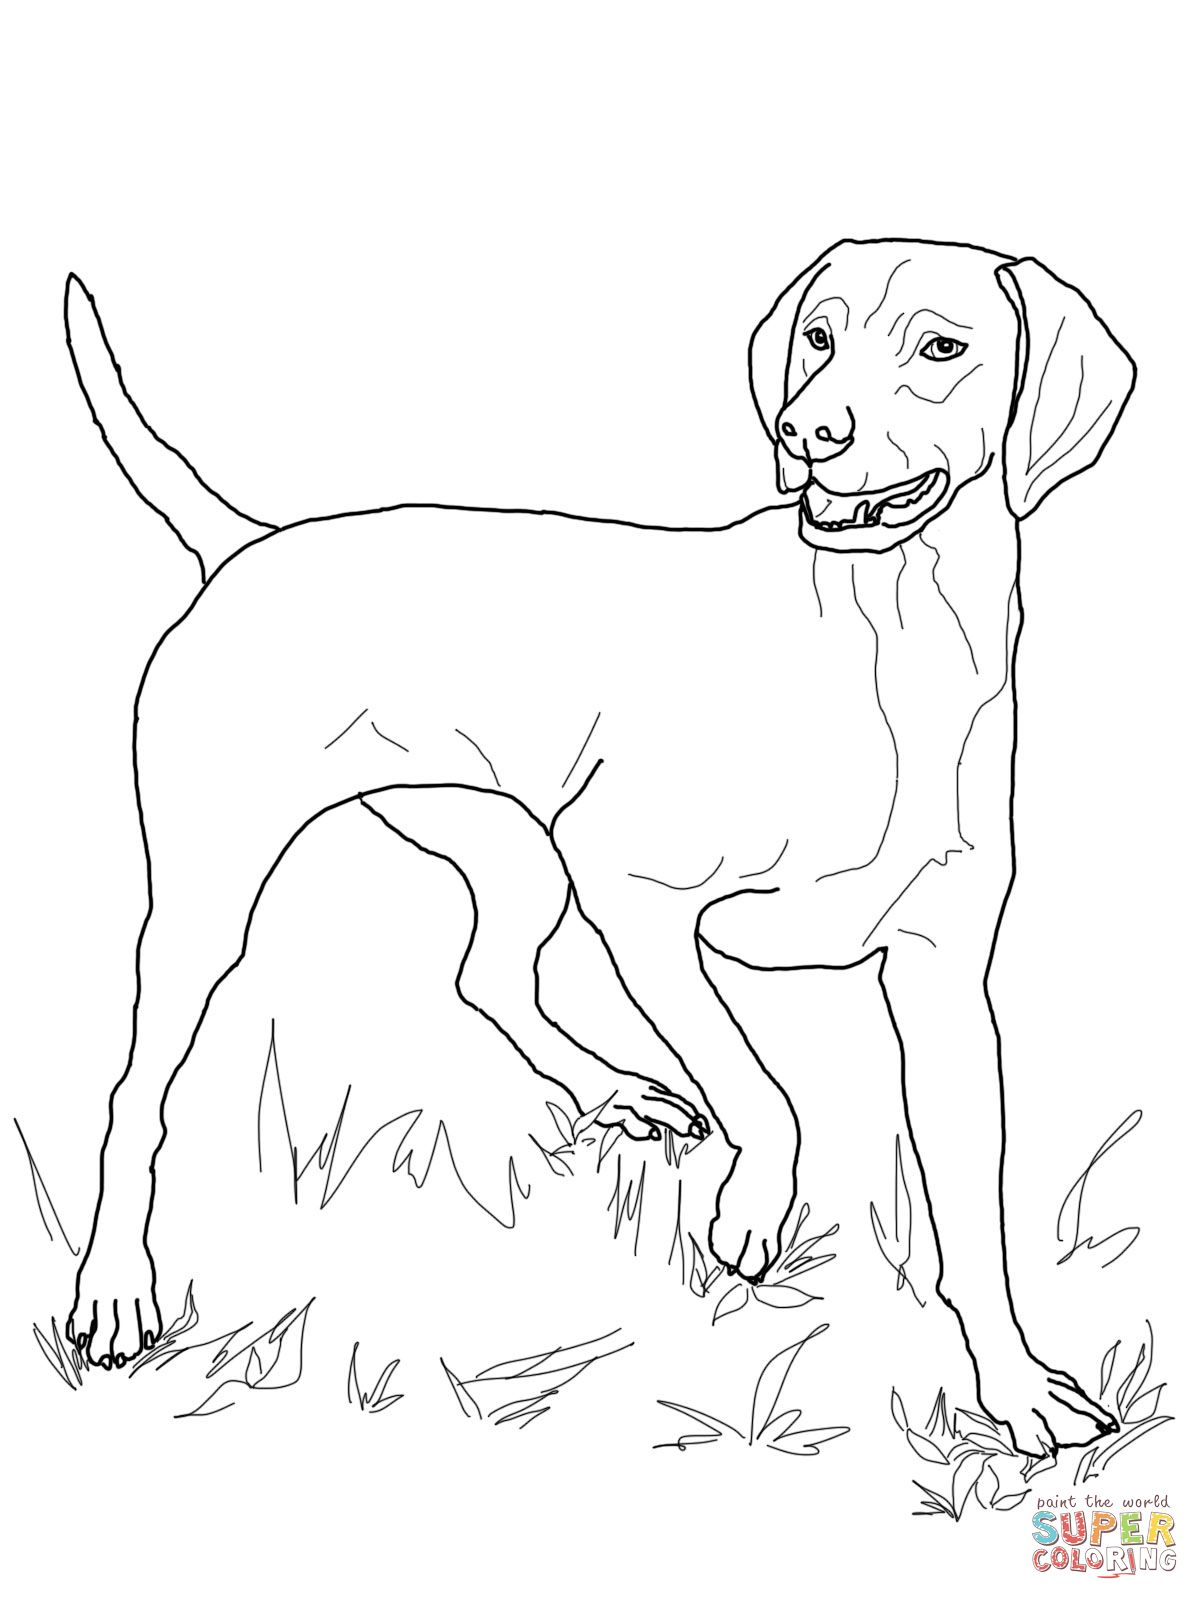 Vizsla | Super Coloring | Dog coloring page, Vizsla, Puppy ...